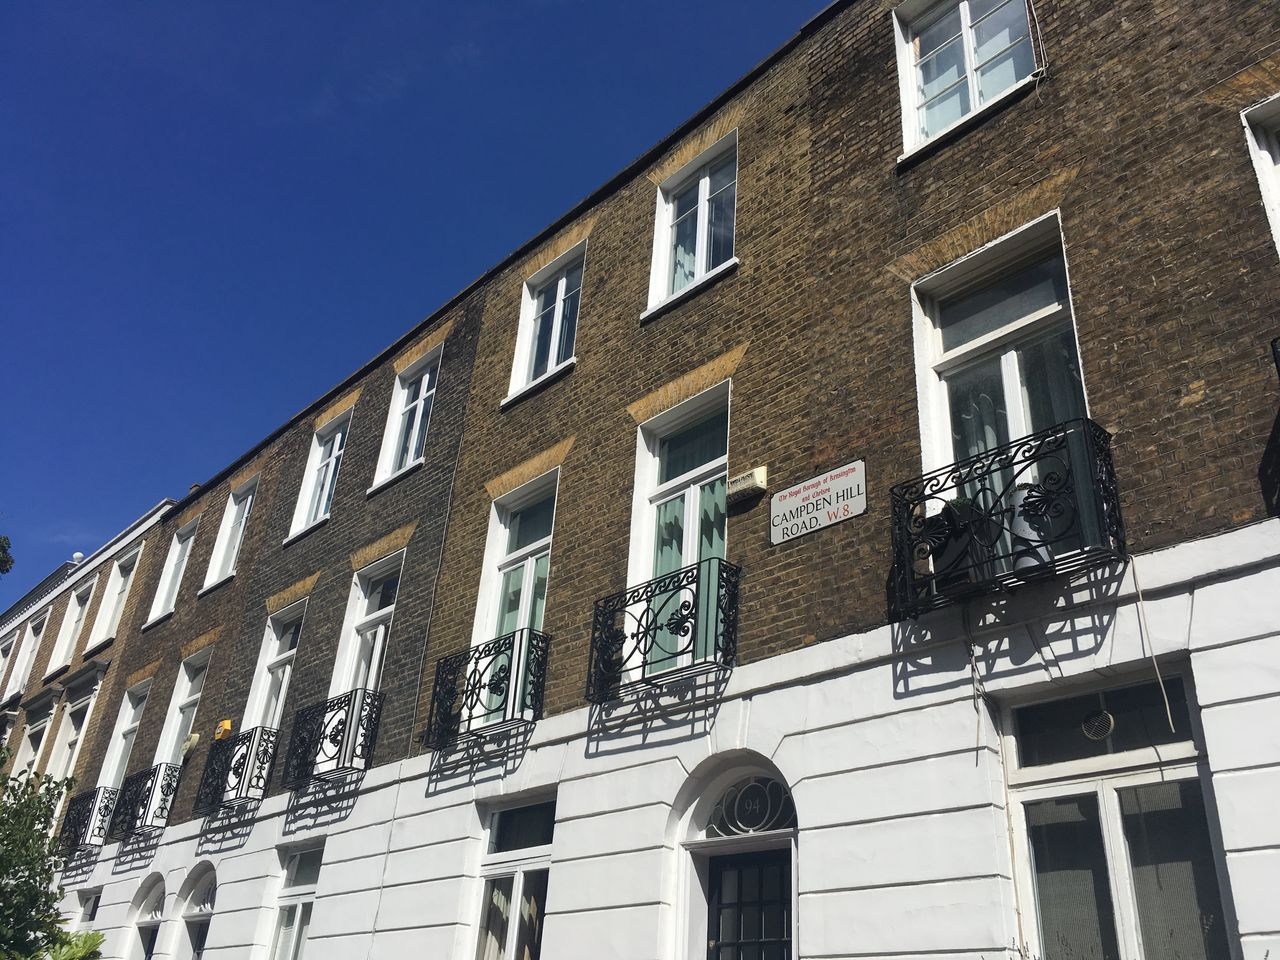 A terrace of houses in London with the balcony adoring them.